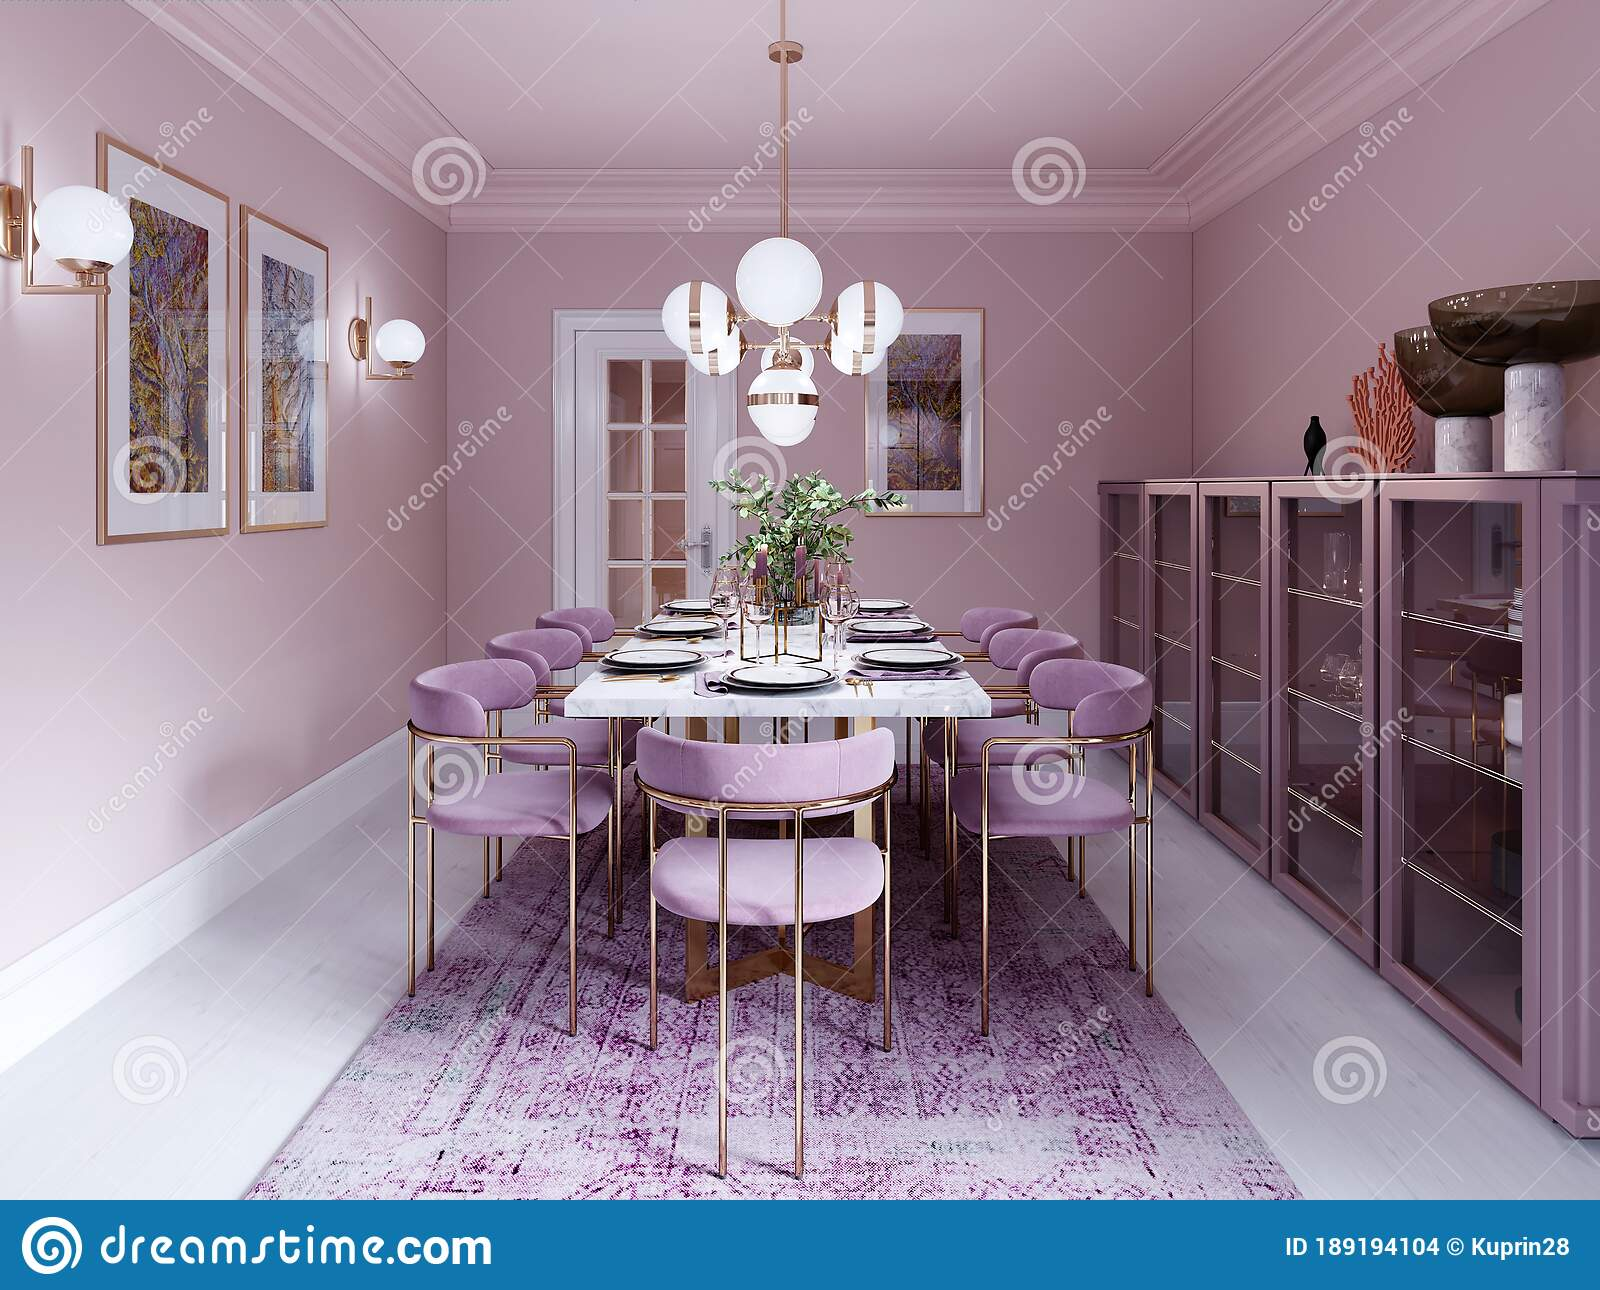 Lilac Color Dining Room In Trendy Art Deco Style With Modern Furniture Served Table And Chairs Stock Illustration Illustration Of Carpeting Chair 189194104